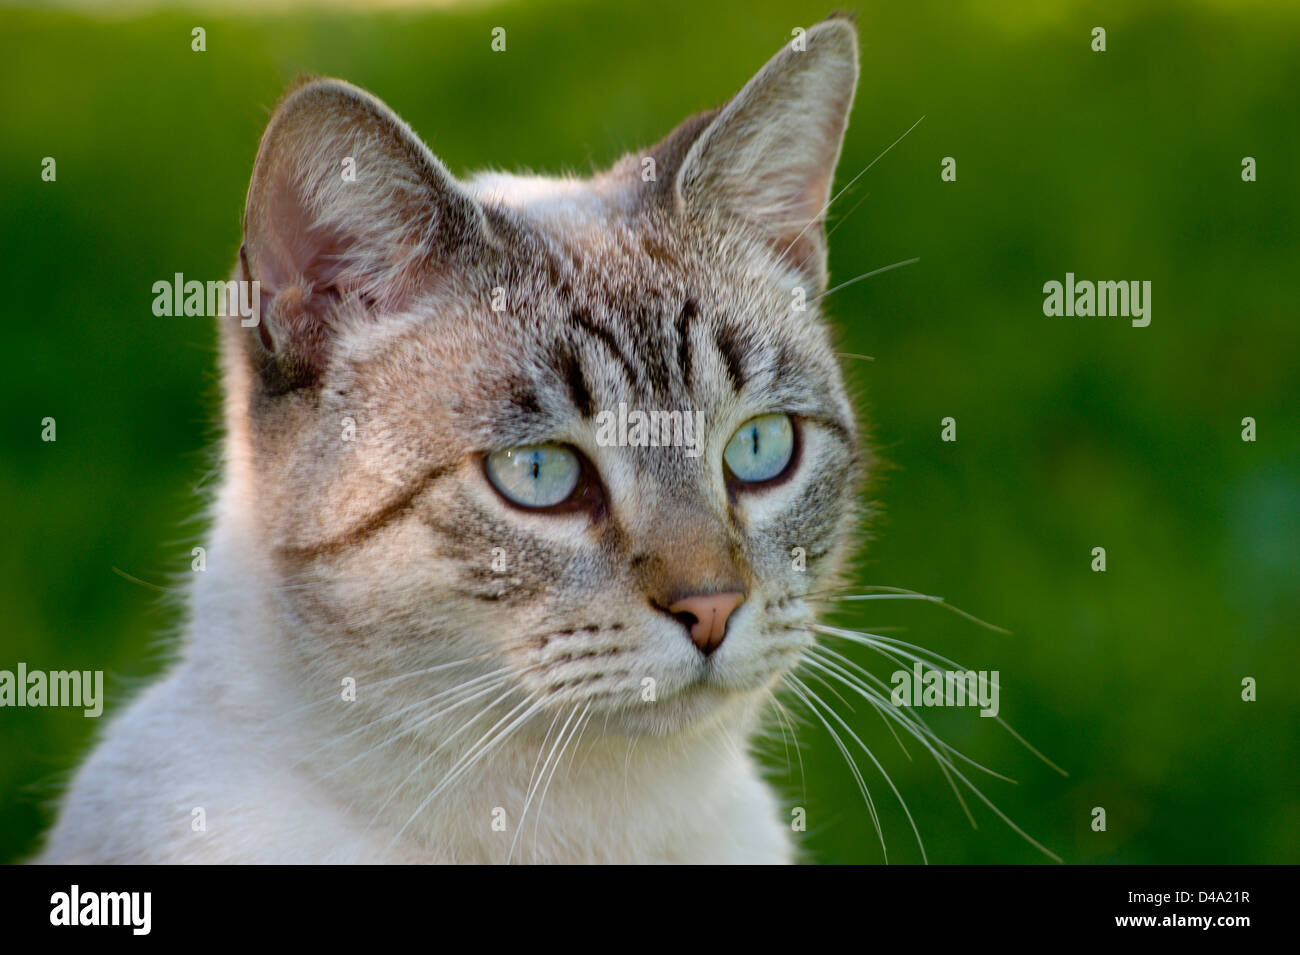 Tabby Cat With Blue Eyes High Resolution Stock Photography And Images Alamy